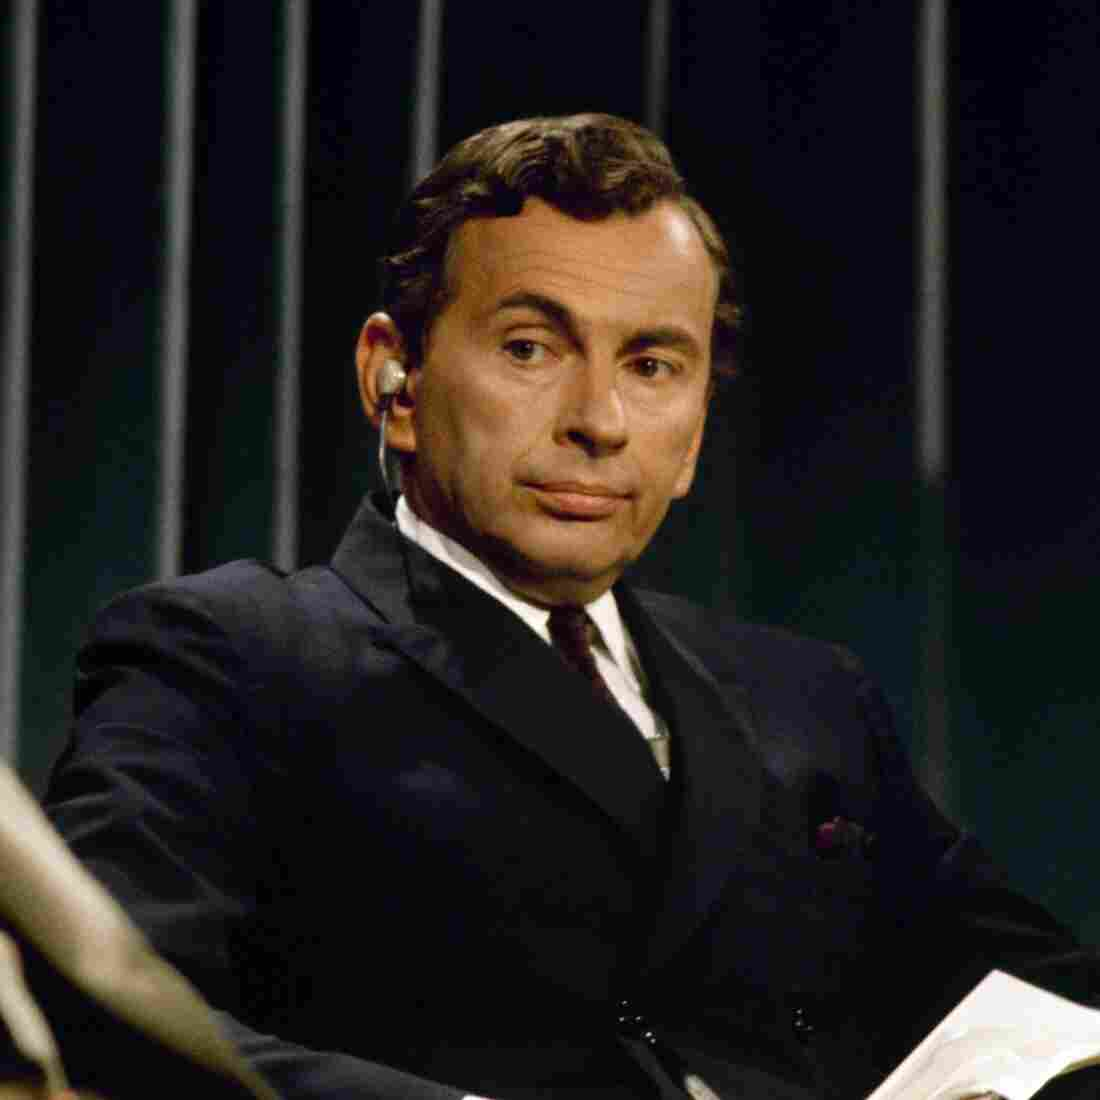 In 1968, ABC paired two pundits from opposite ends of the political spectrum — William F. Buckley Jr. (left) and Gore Vidal — for a cut-throat intellectual faceoff. The documentary Best of Enemies explores this media milestone.